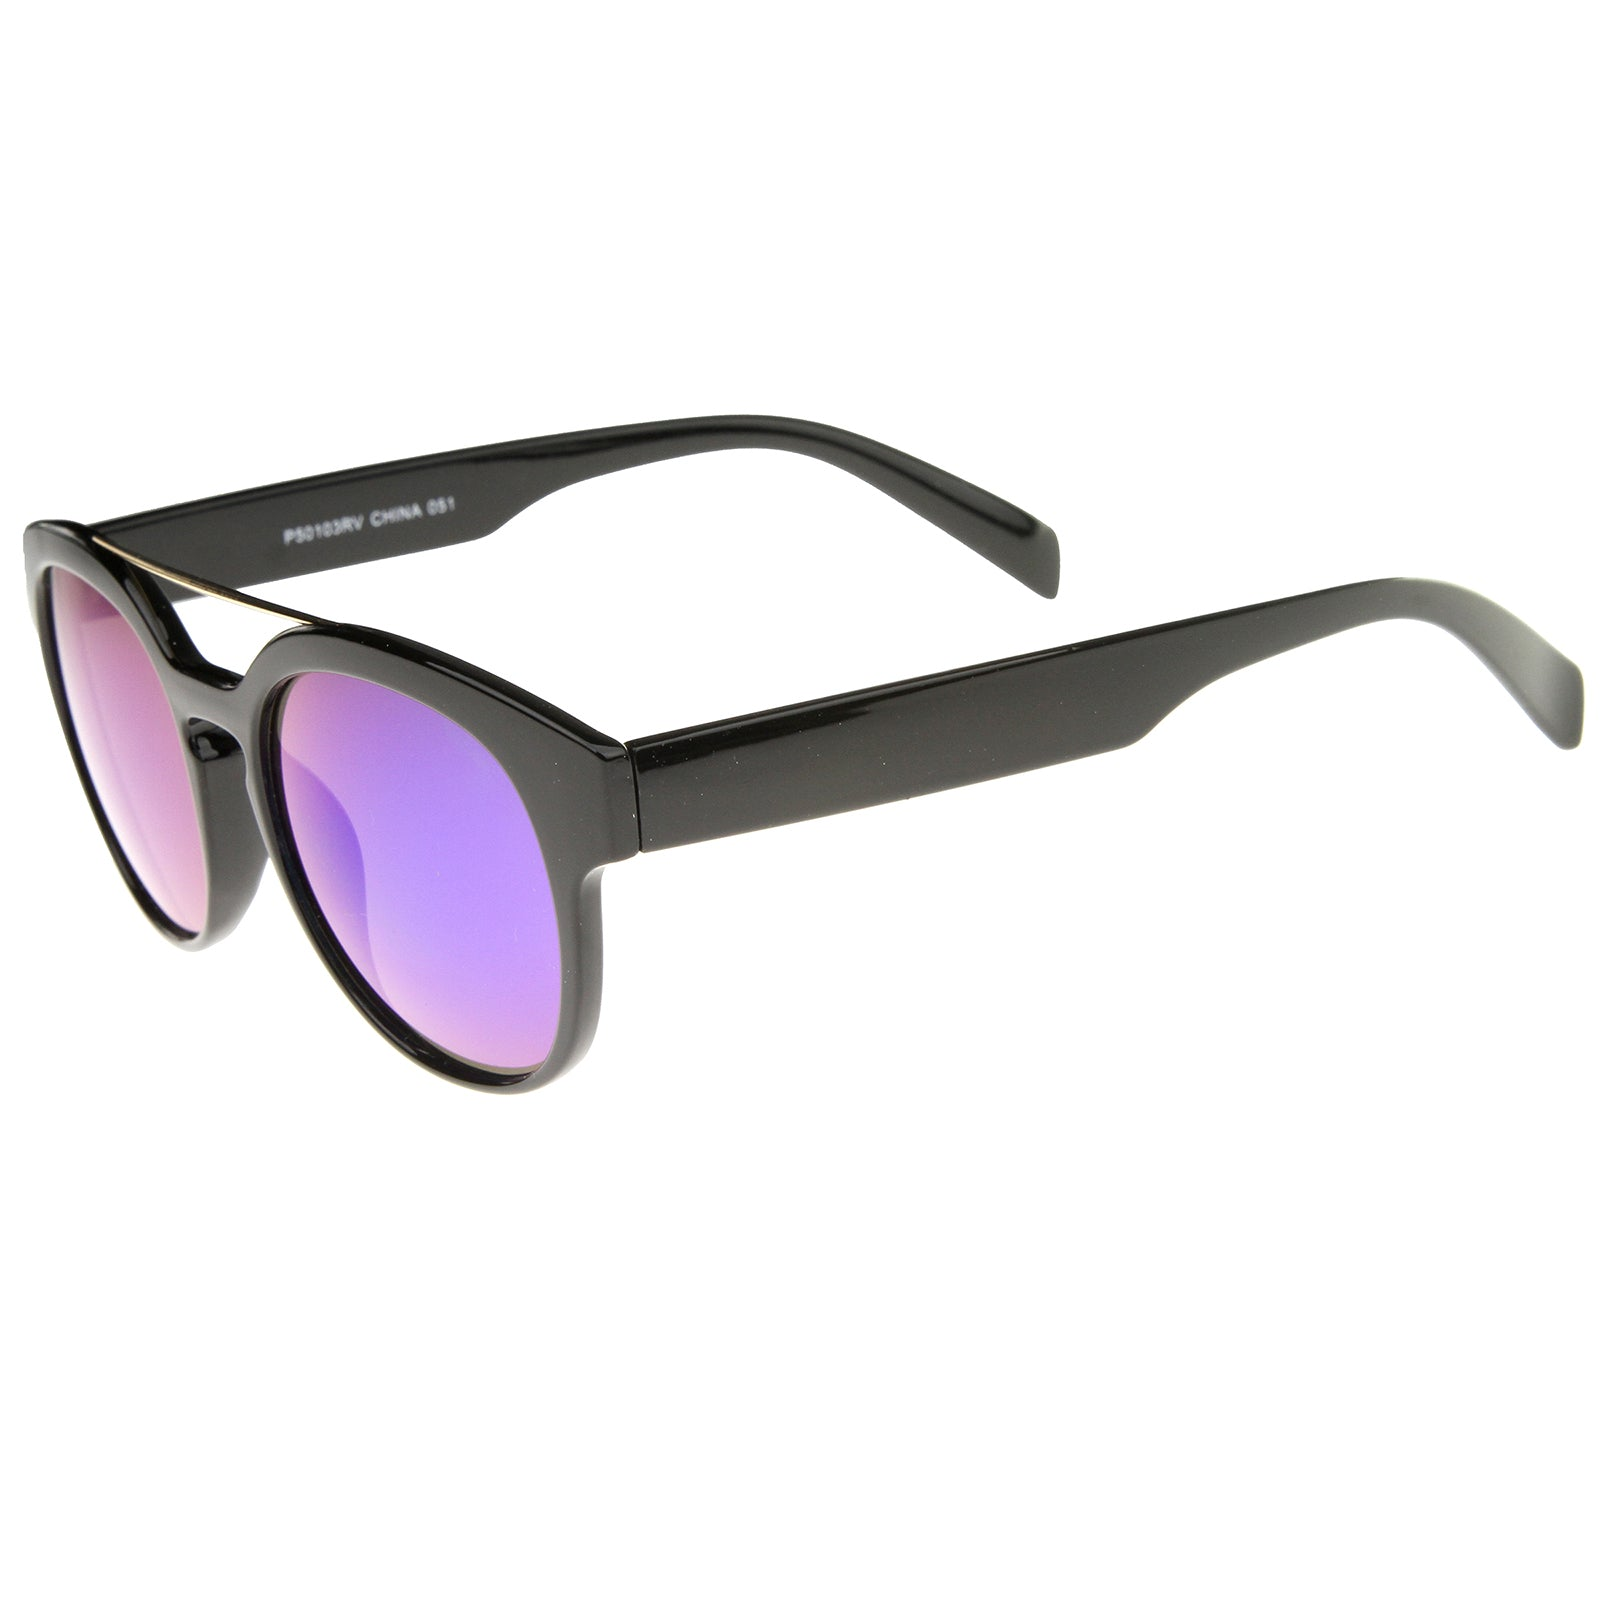 Modern Slim Metal Crossbar Iridescent Lens Horn Rimmed Sunglasses 51mm - sunglass.la - 7